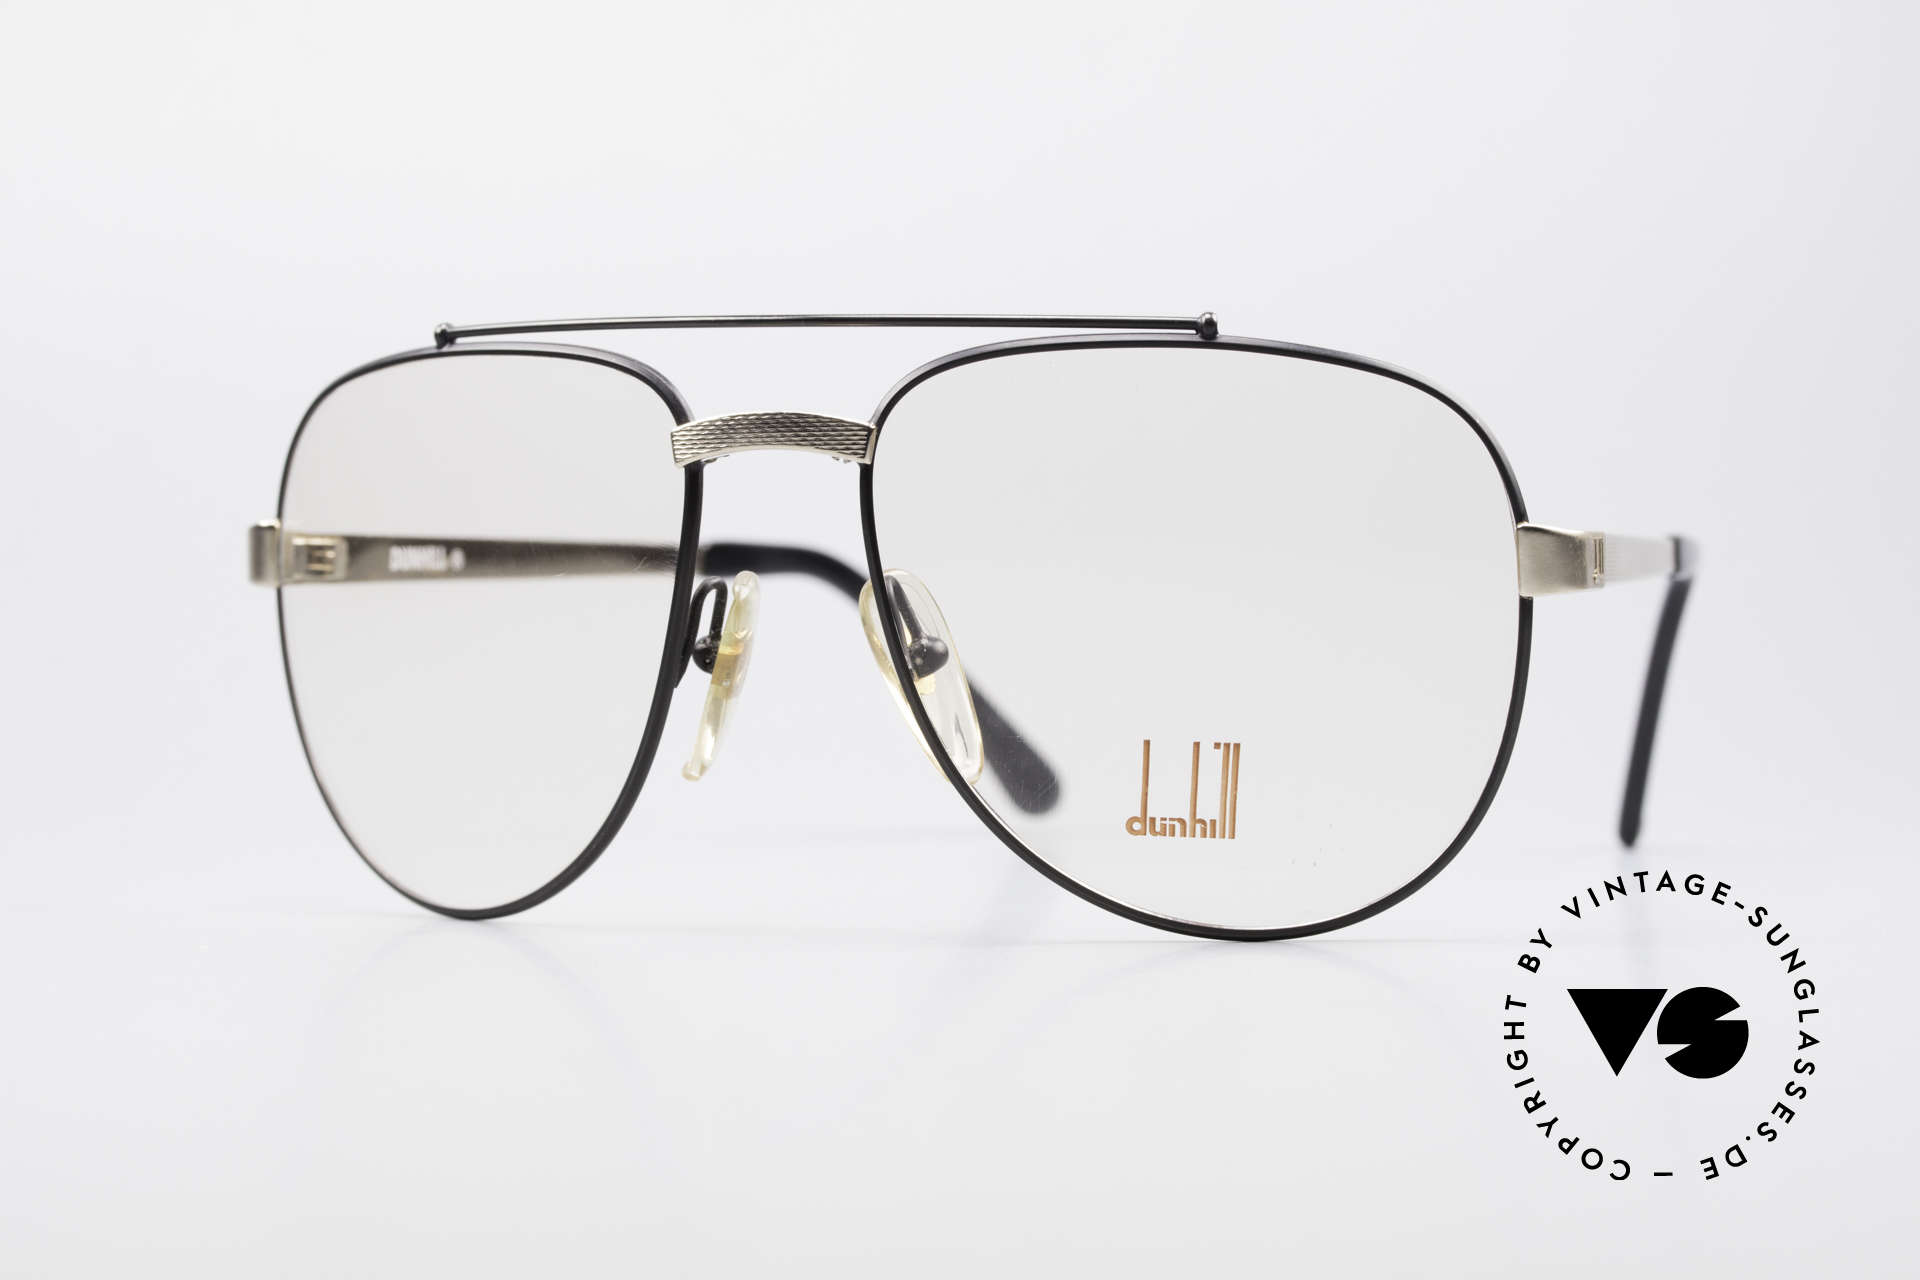 Dunhill 6029 Comfort Fit Luxury Eyeglasses, stylish A. Dunhill vintage eyeglasses from 1985, Made for Men